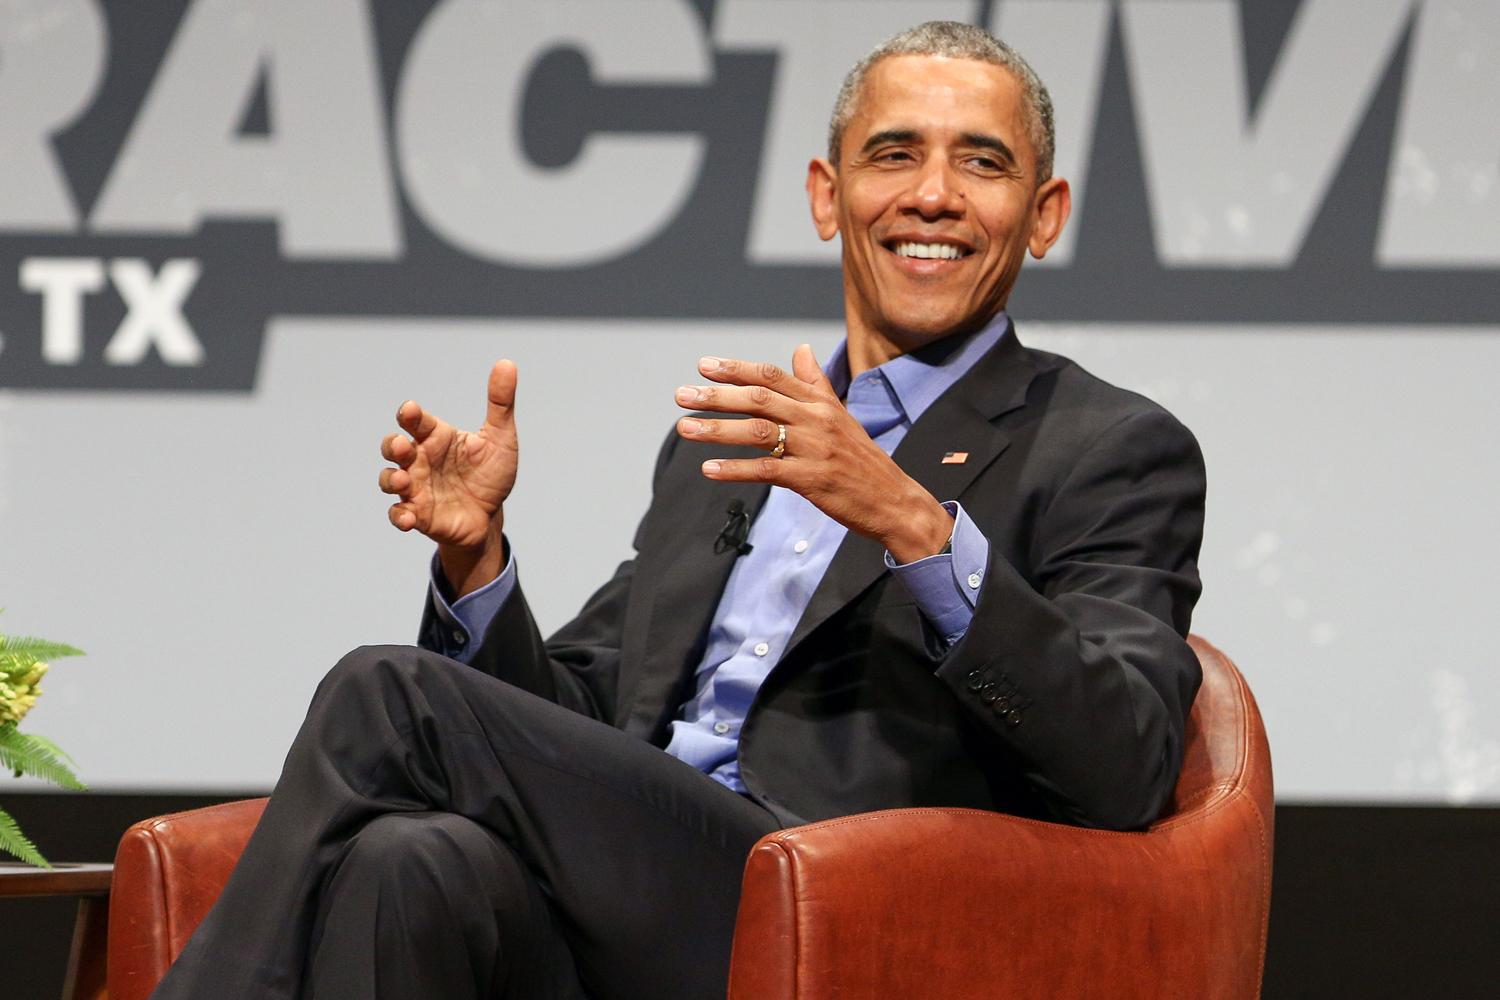 President Obama Is Throwing His Own SXSW Festival